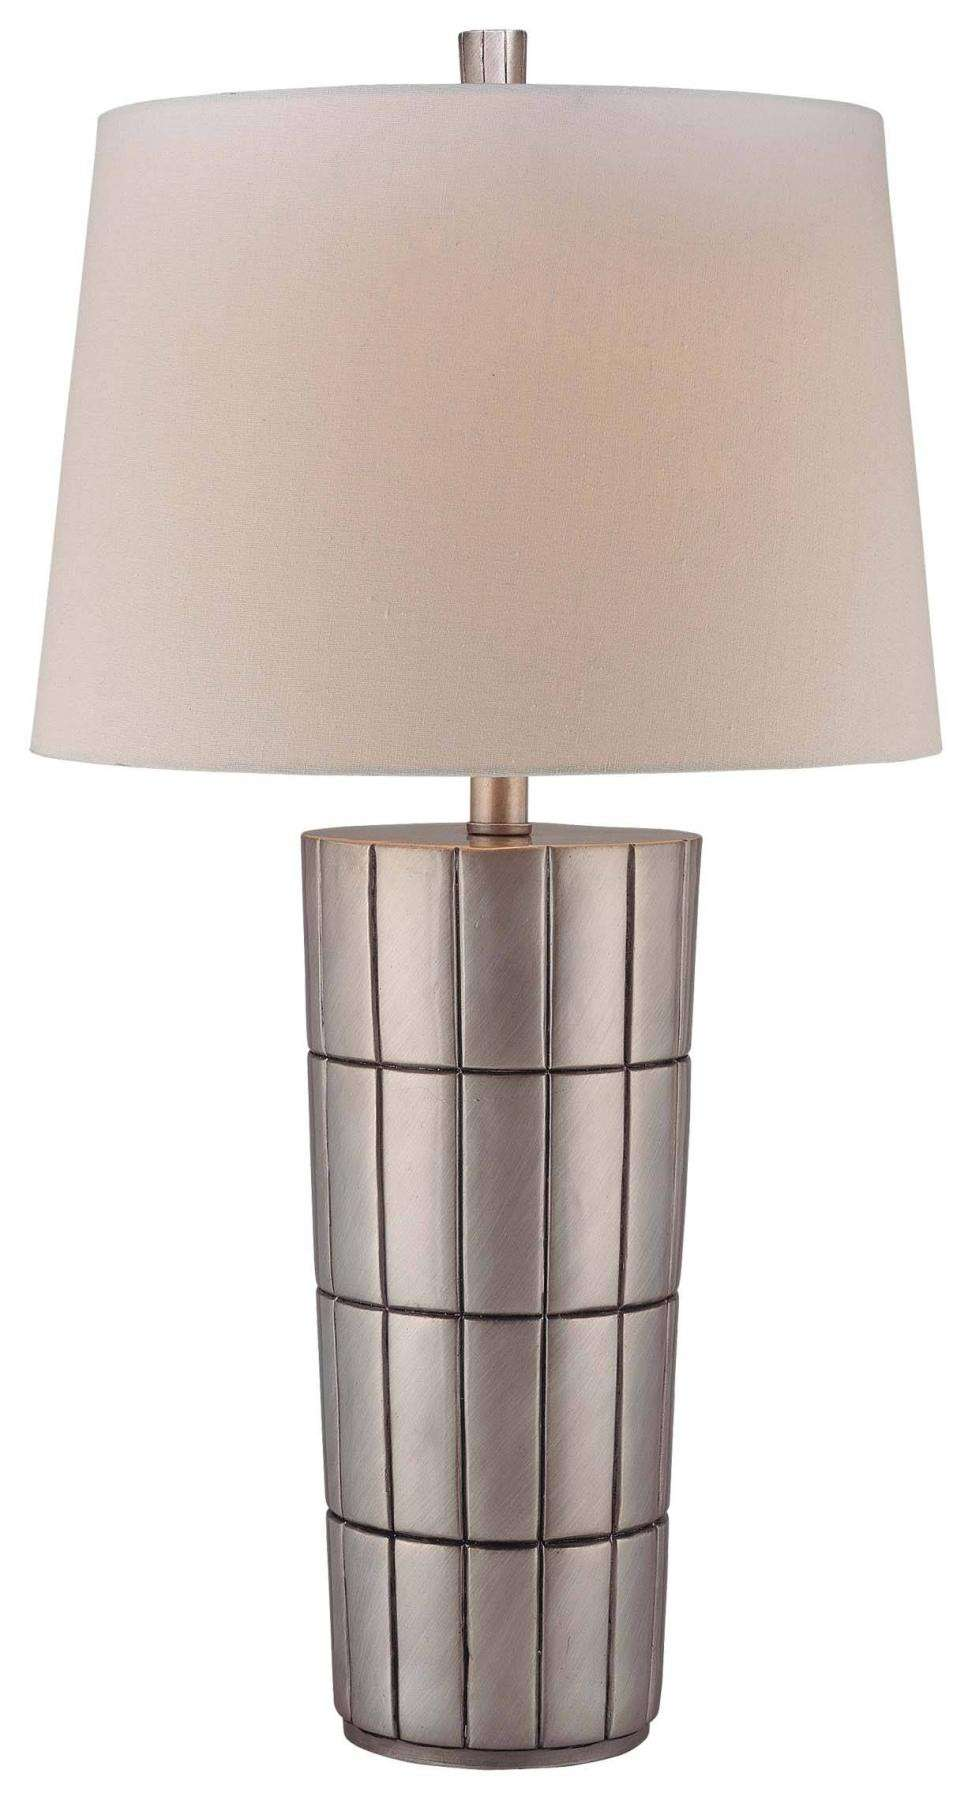 Miscellaneous Table Lamp